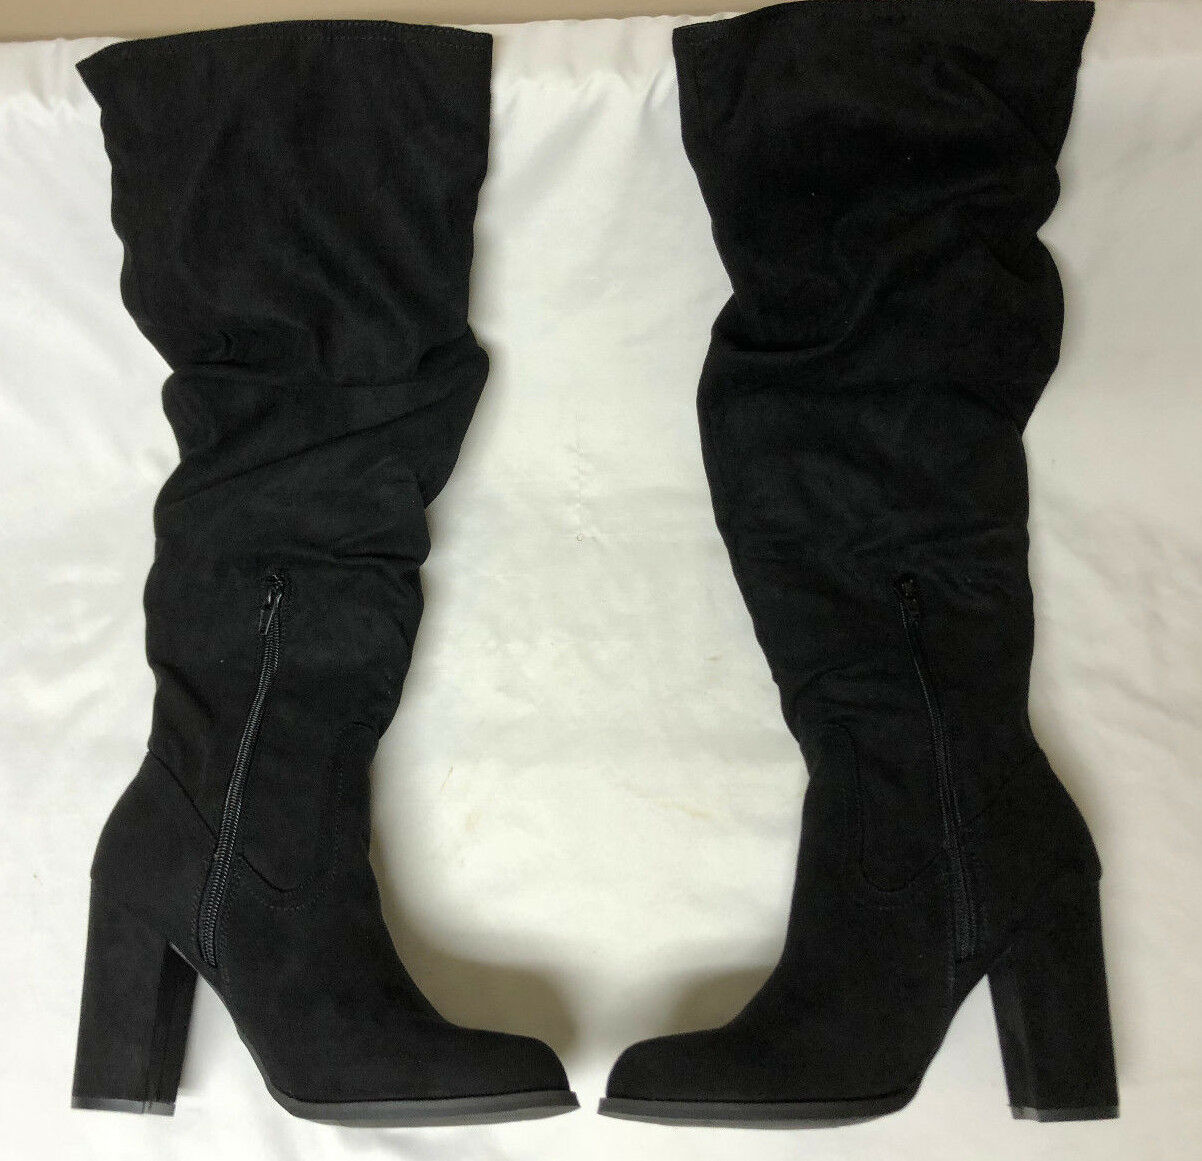 e459250d618 Madden Girl Cinder Knee-high Slouch BOOTS 865 Black Fabric 7 US